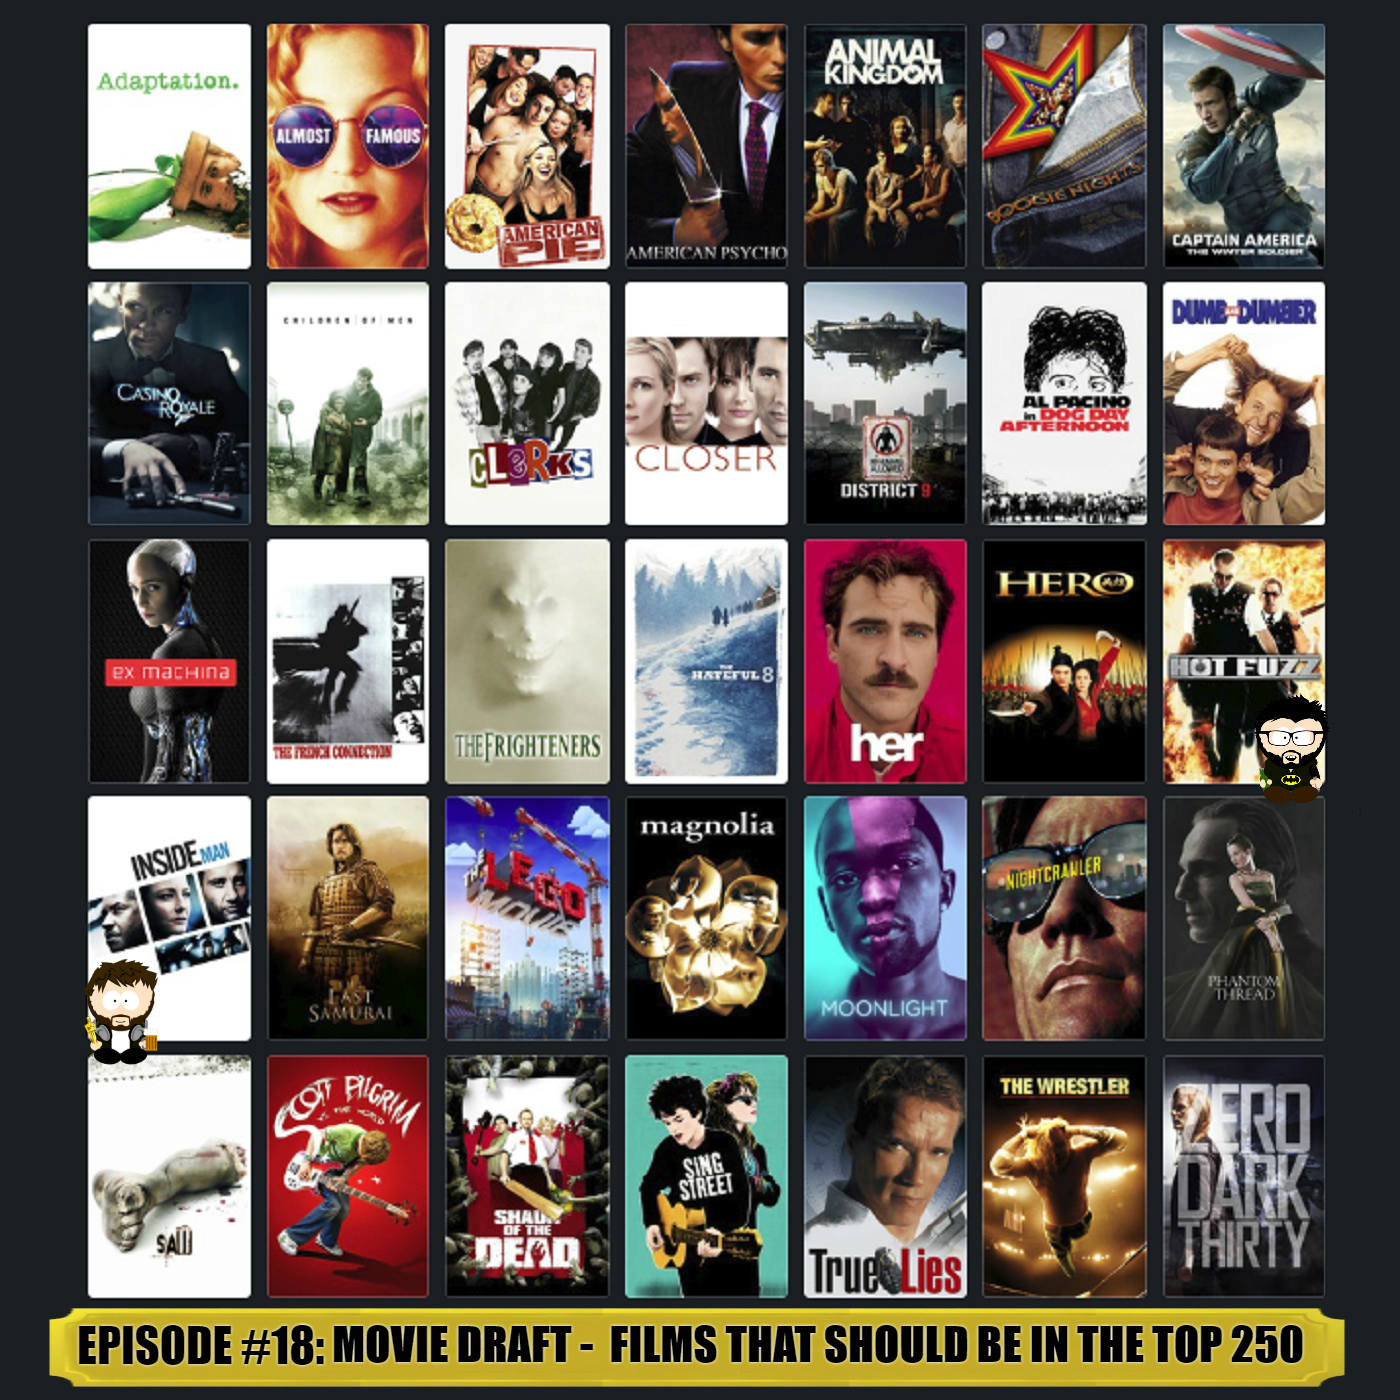 18 - Mega Movie Draft: Films That Should Be In The Top 250 - Whooshkaa